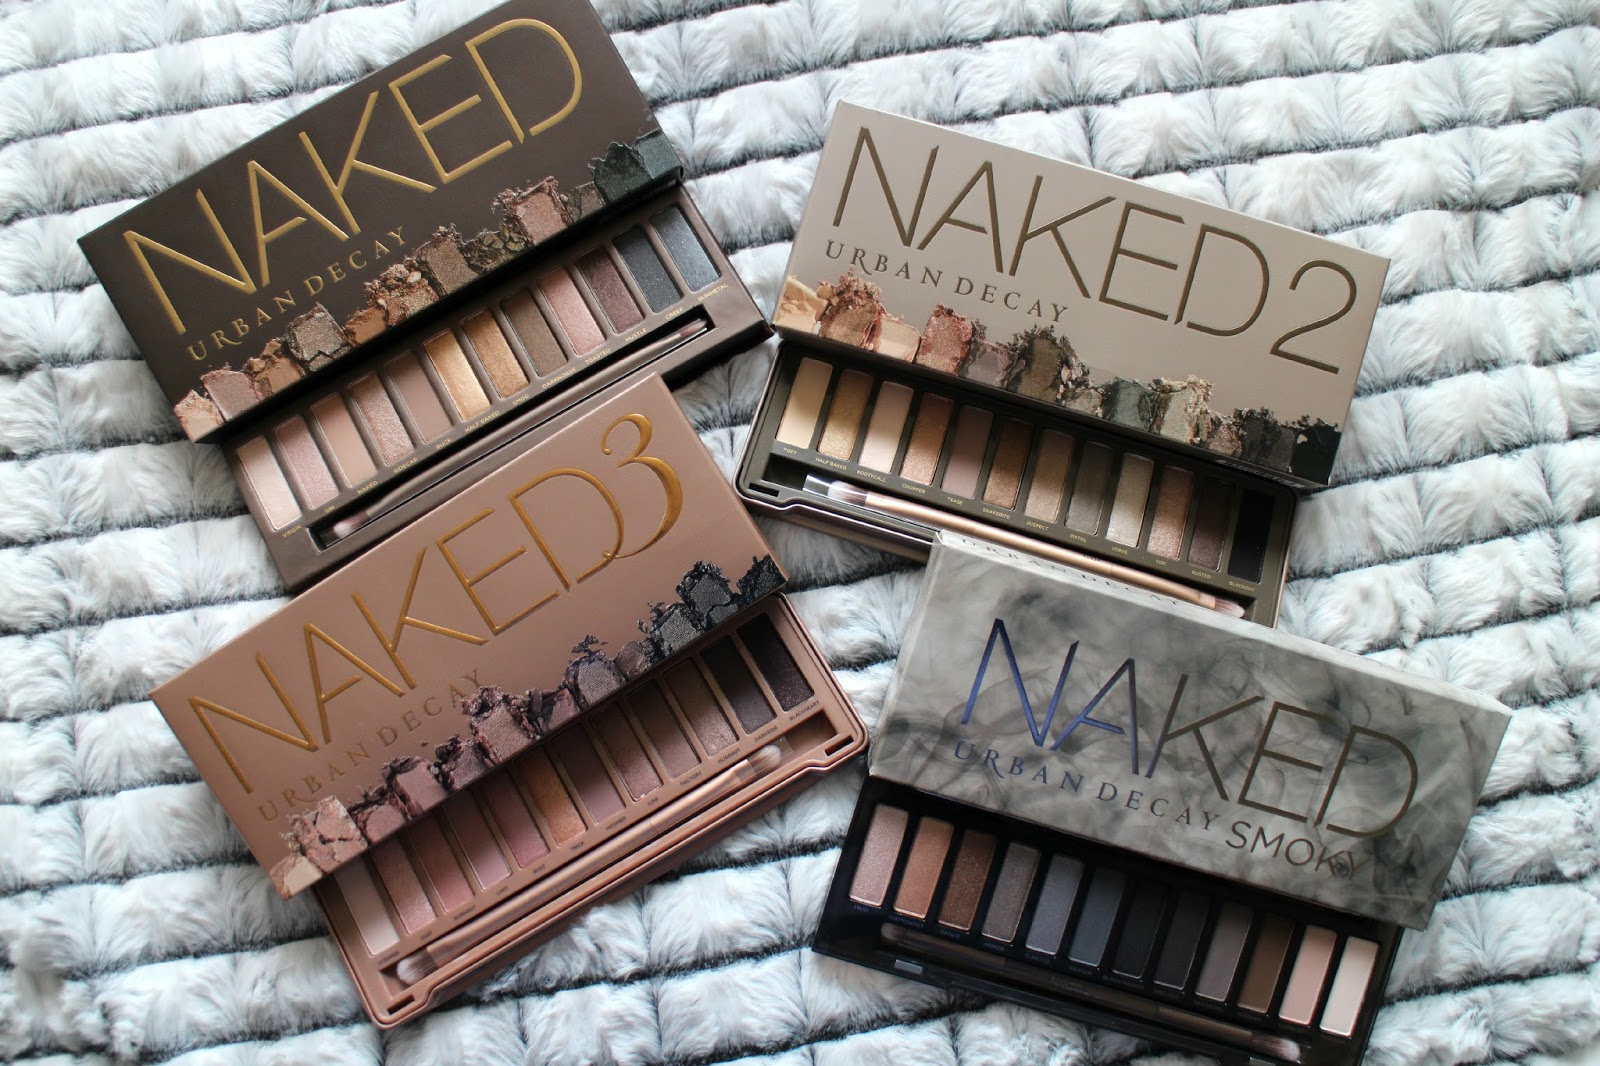 Urban Decay Is Discontinuing Original Naked Palette Here Are The Details